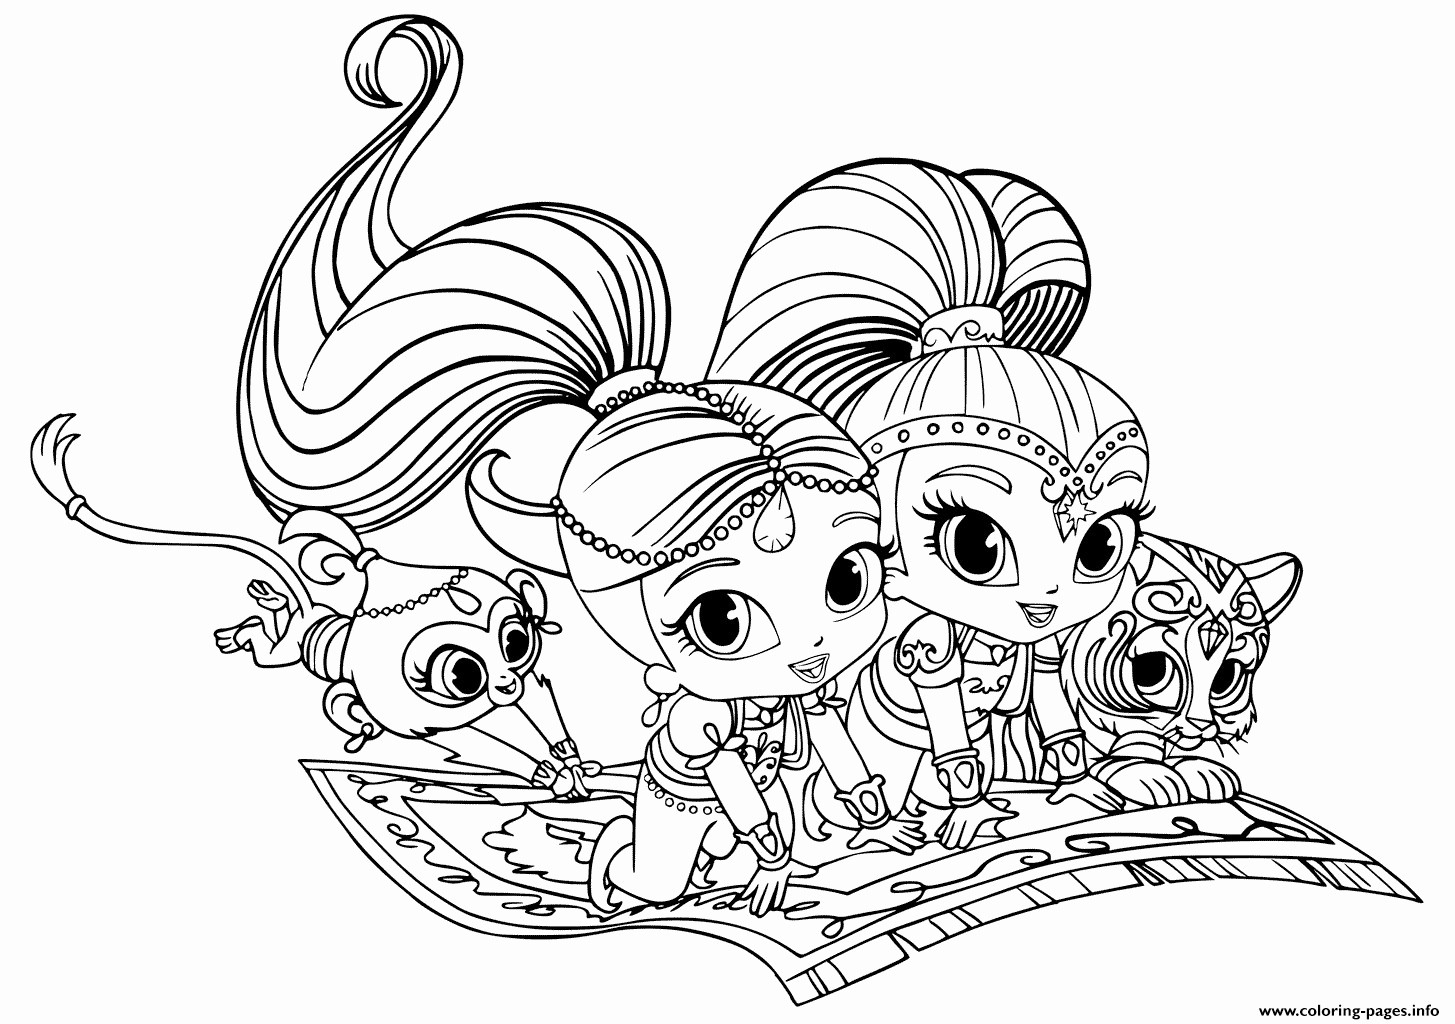 Jojo Siwa Coloring Pages Cooloring Book Fabulous Jojo Siwa Coloring Pages Height Meme Bows